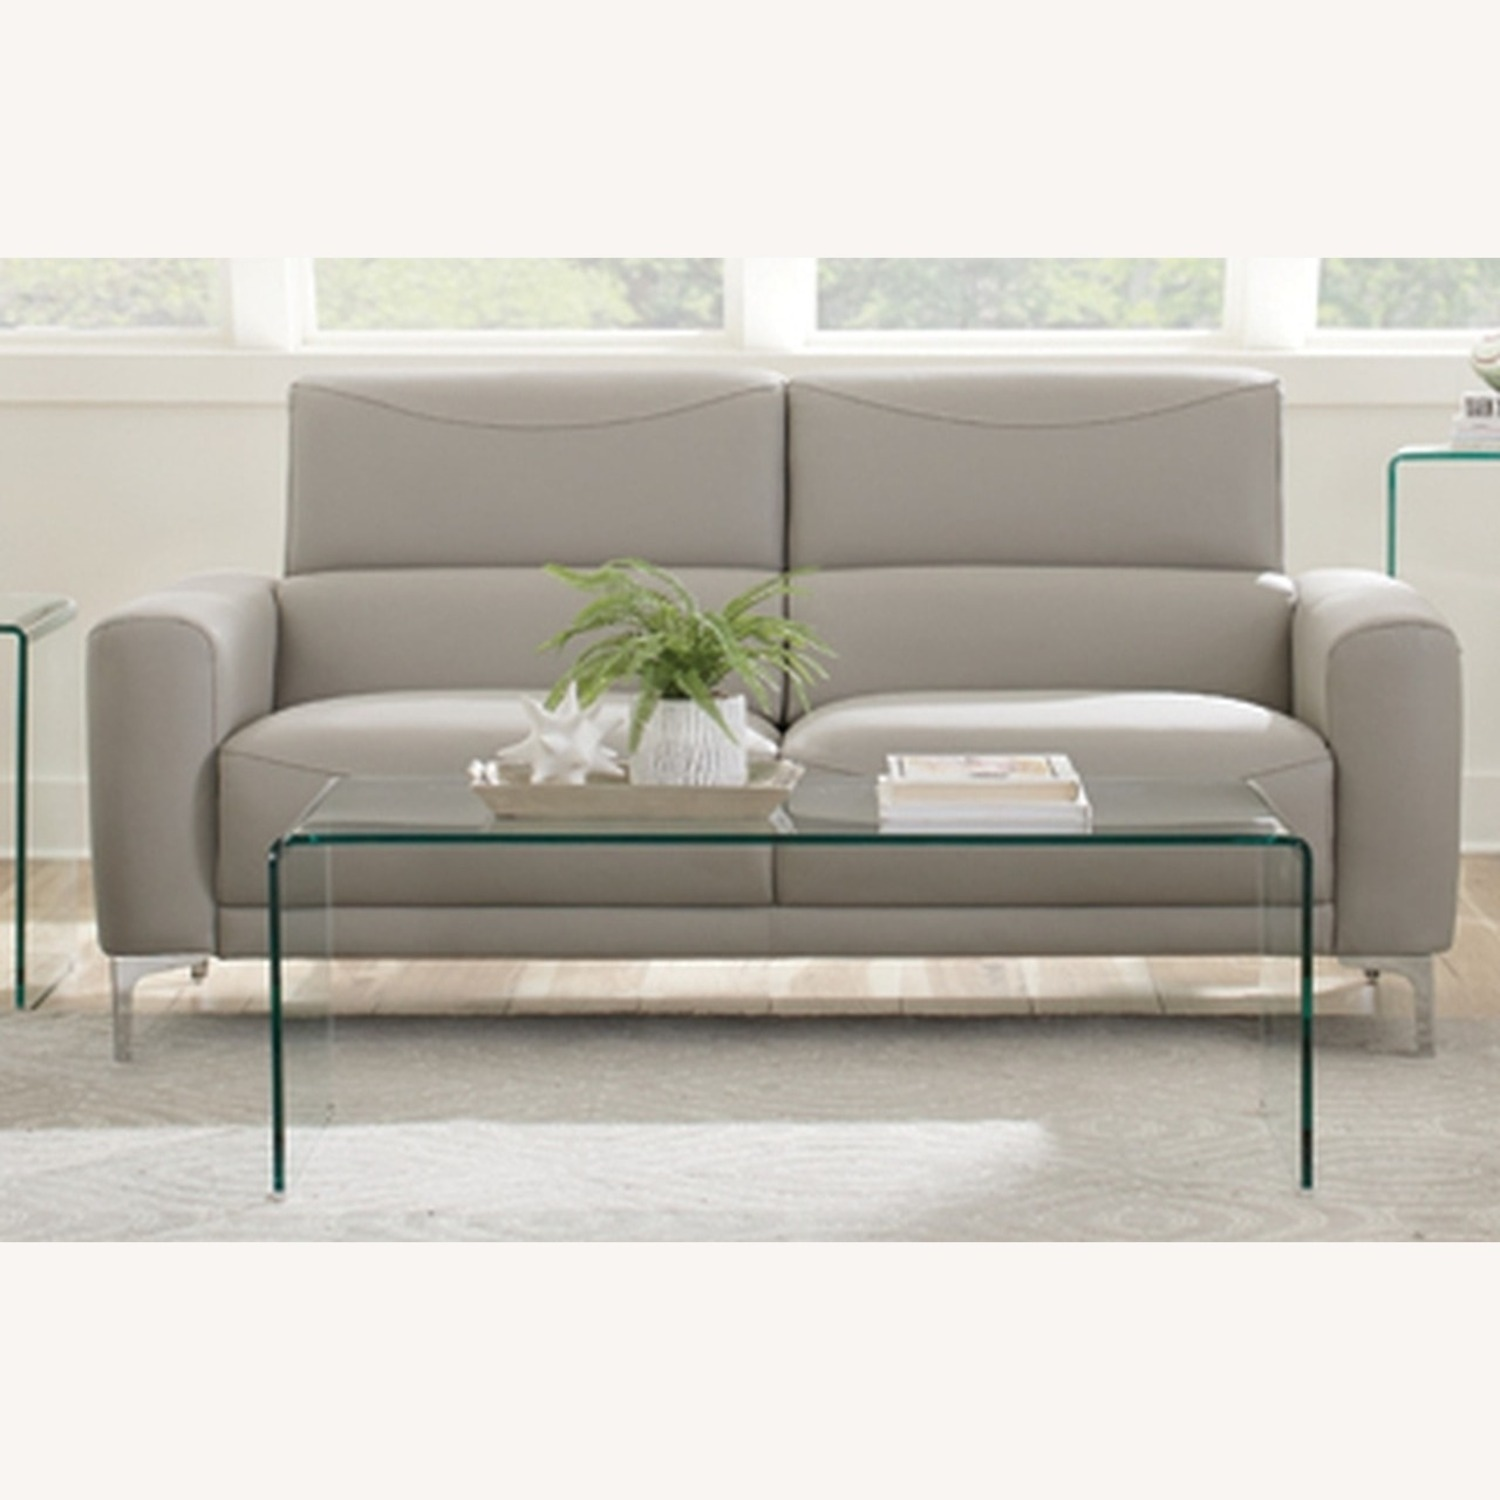 Sofa In Taupe Leatherette W/ Tall Metal Legs - image-1